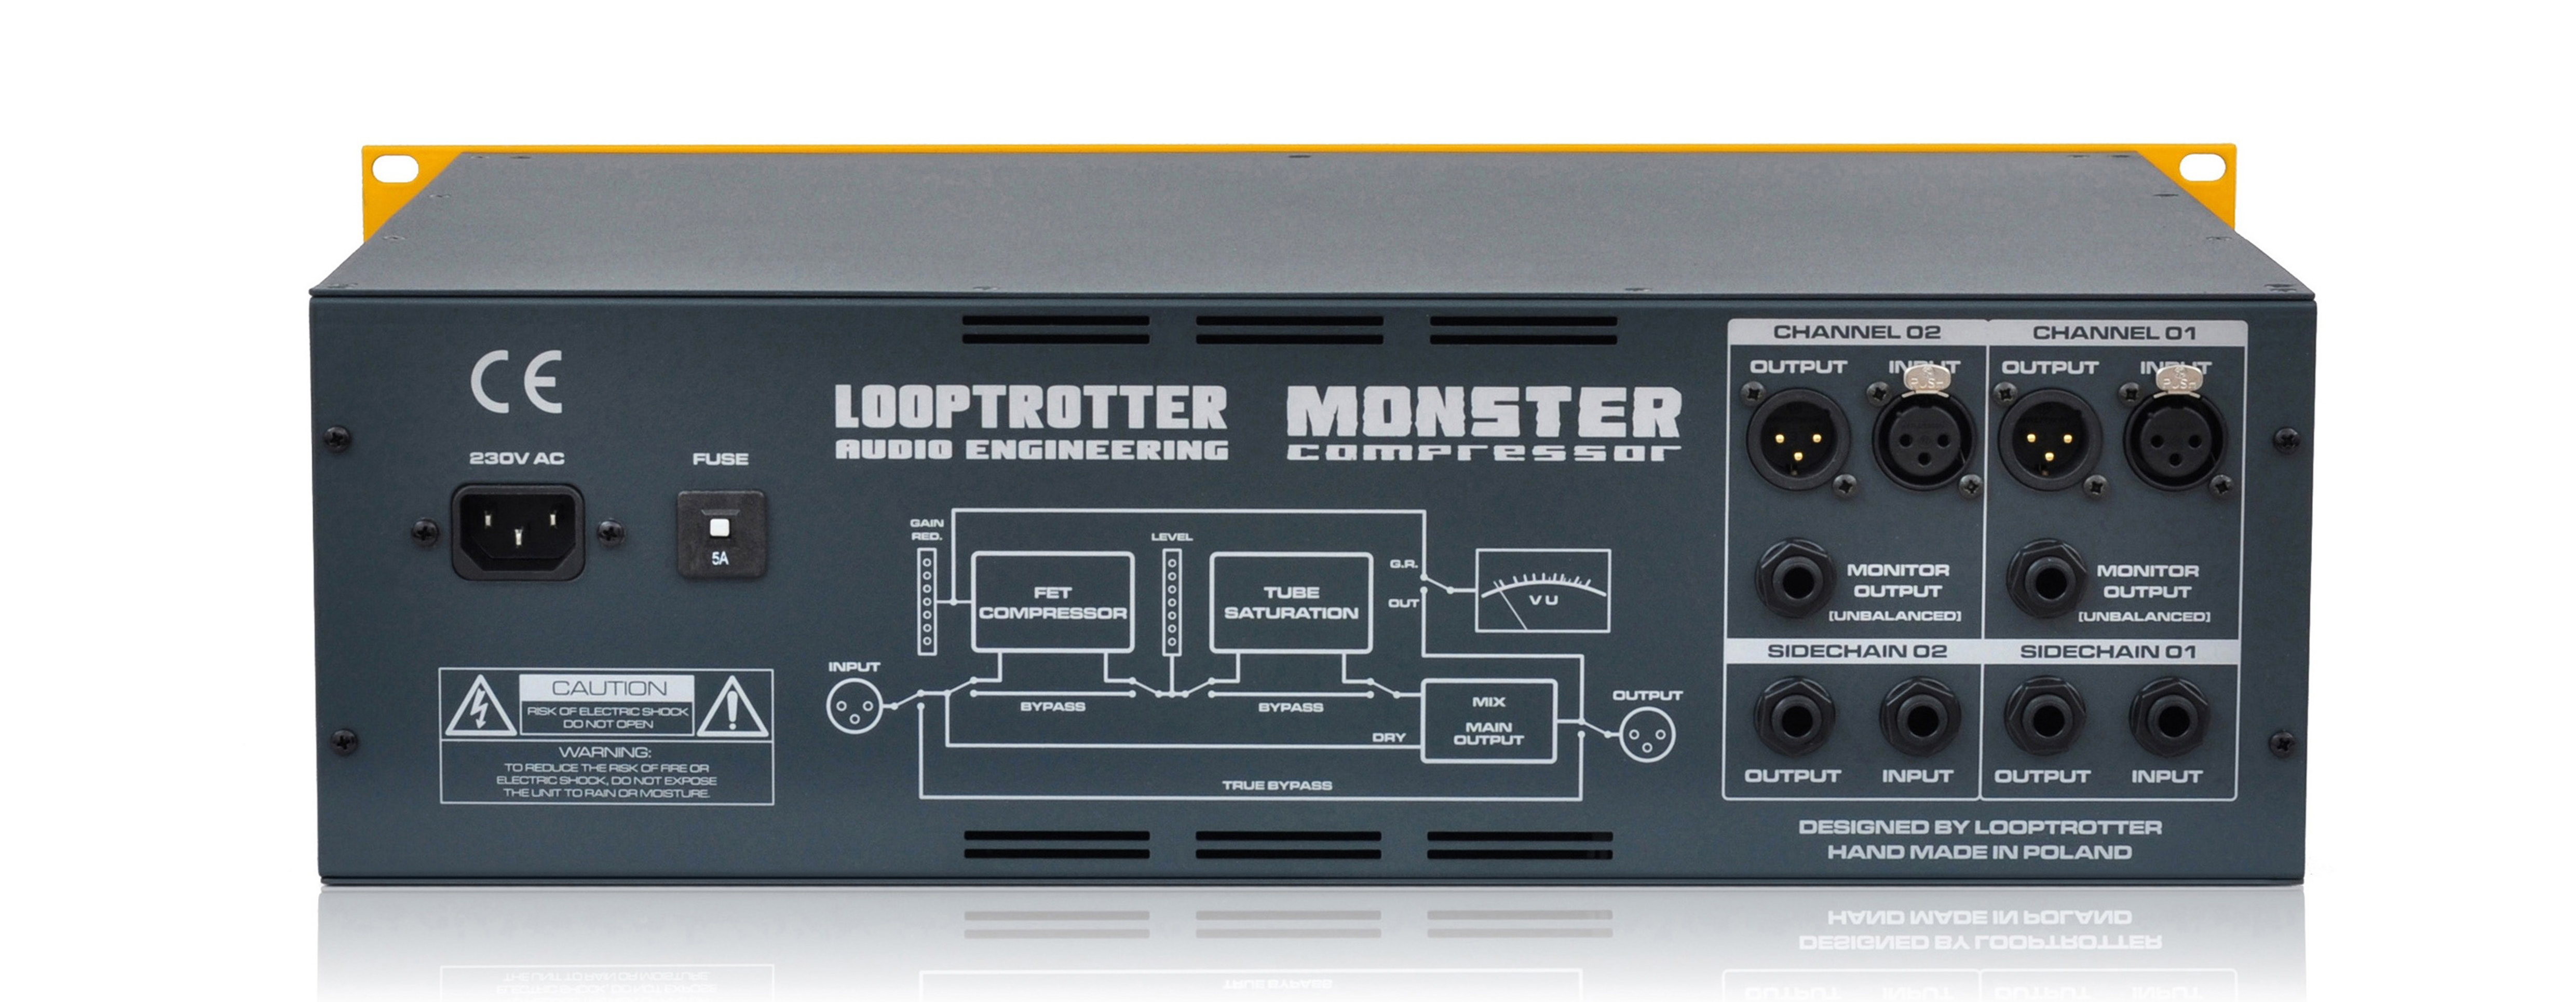 Monster Compressor Looptrotter Integrated Circuits History Quality For It Was Designed To Complement The Soulless Super Clean Digital Technology Compression Module Evens Signal In A Very Musical Way